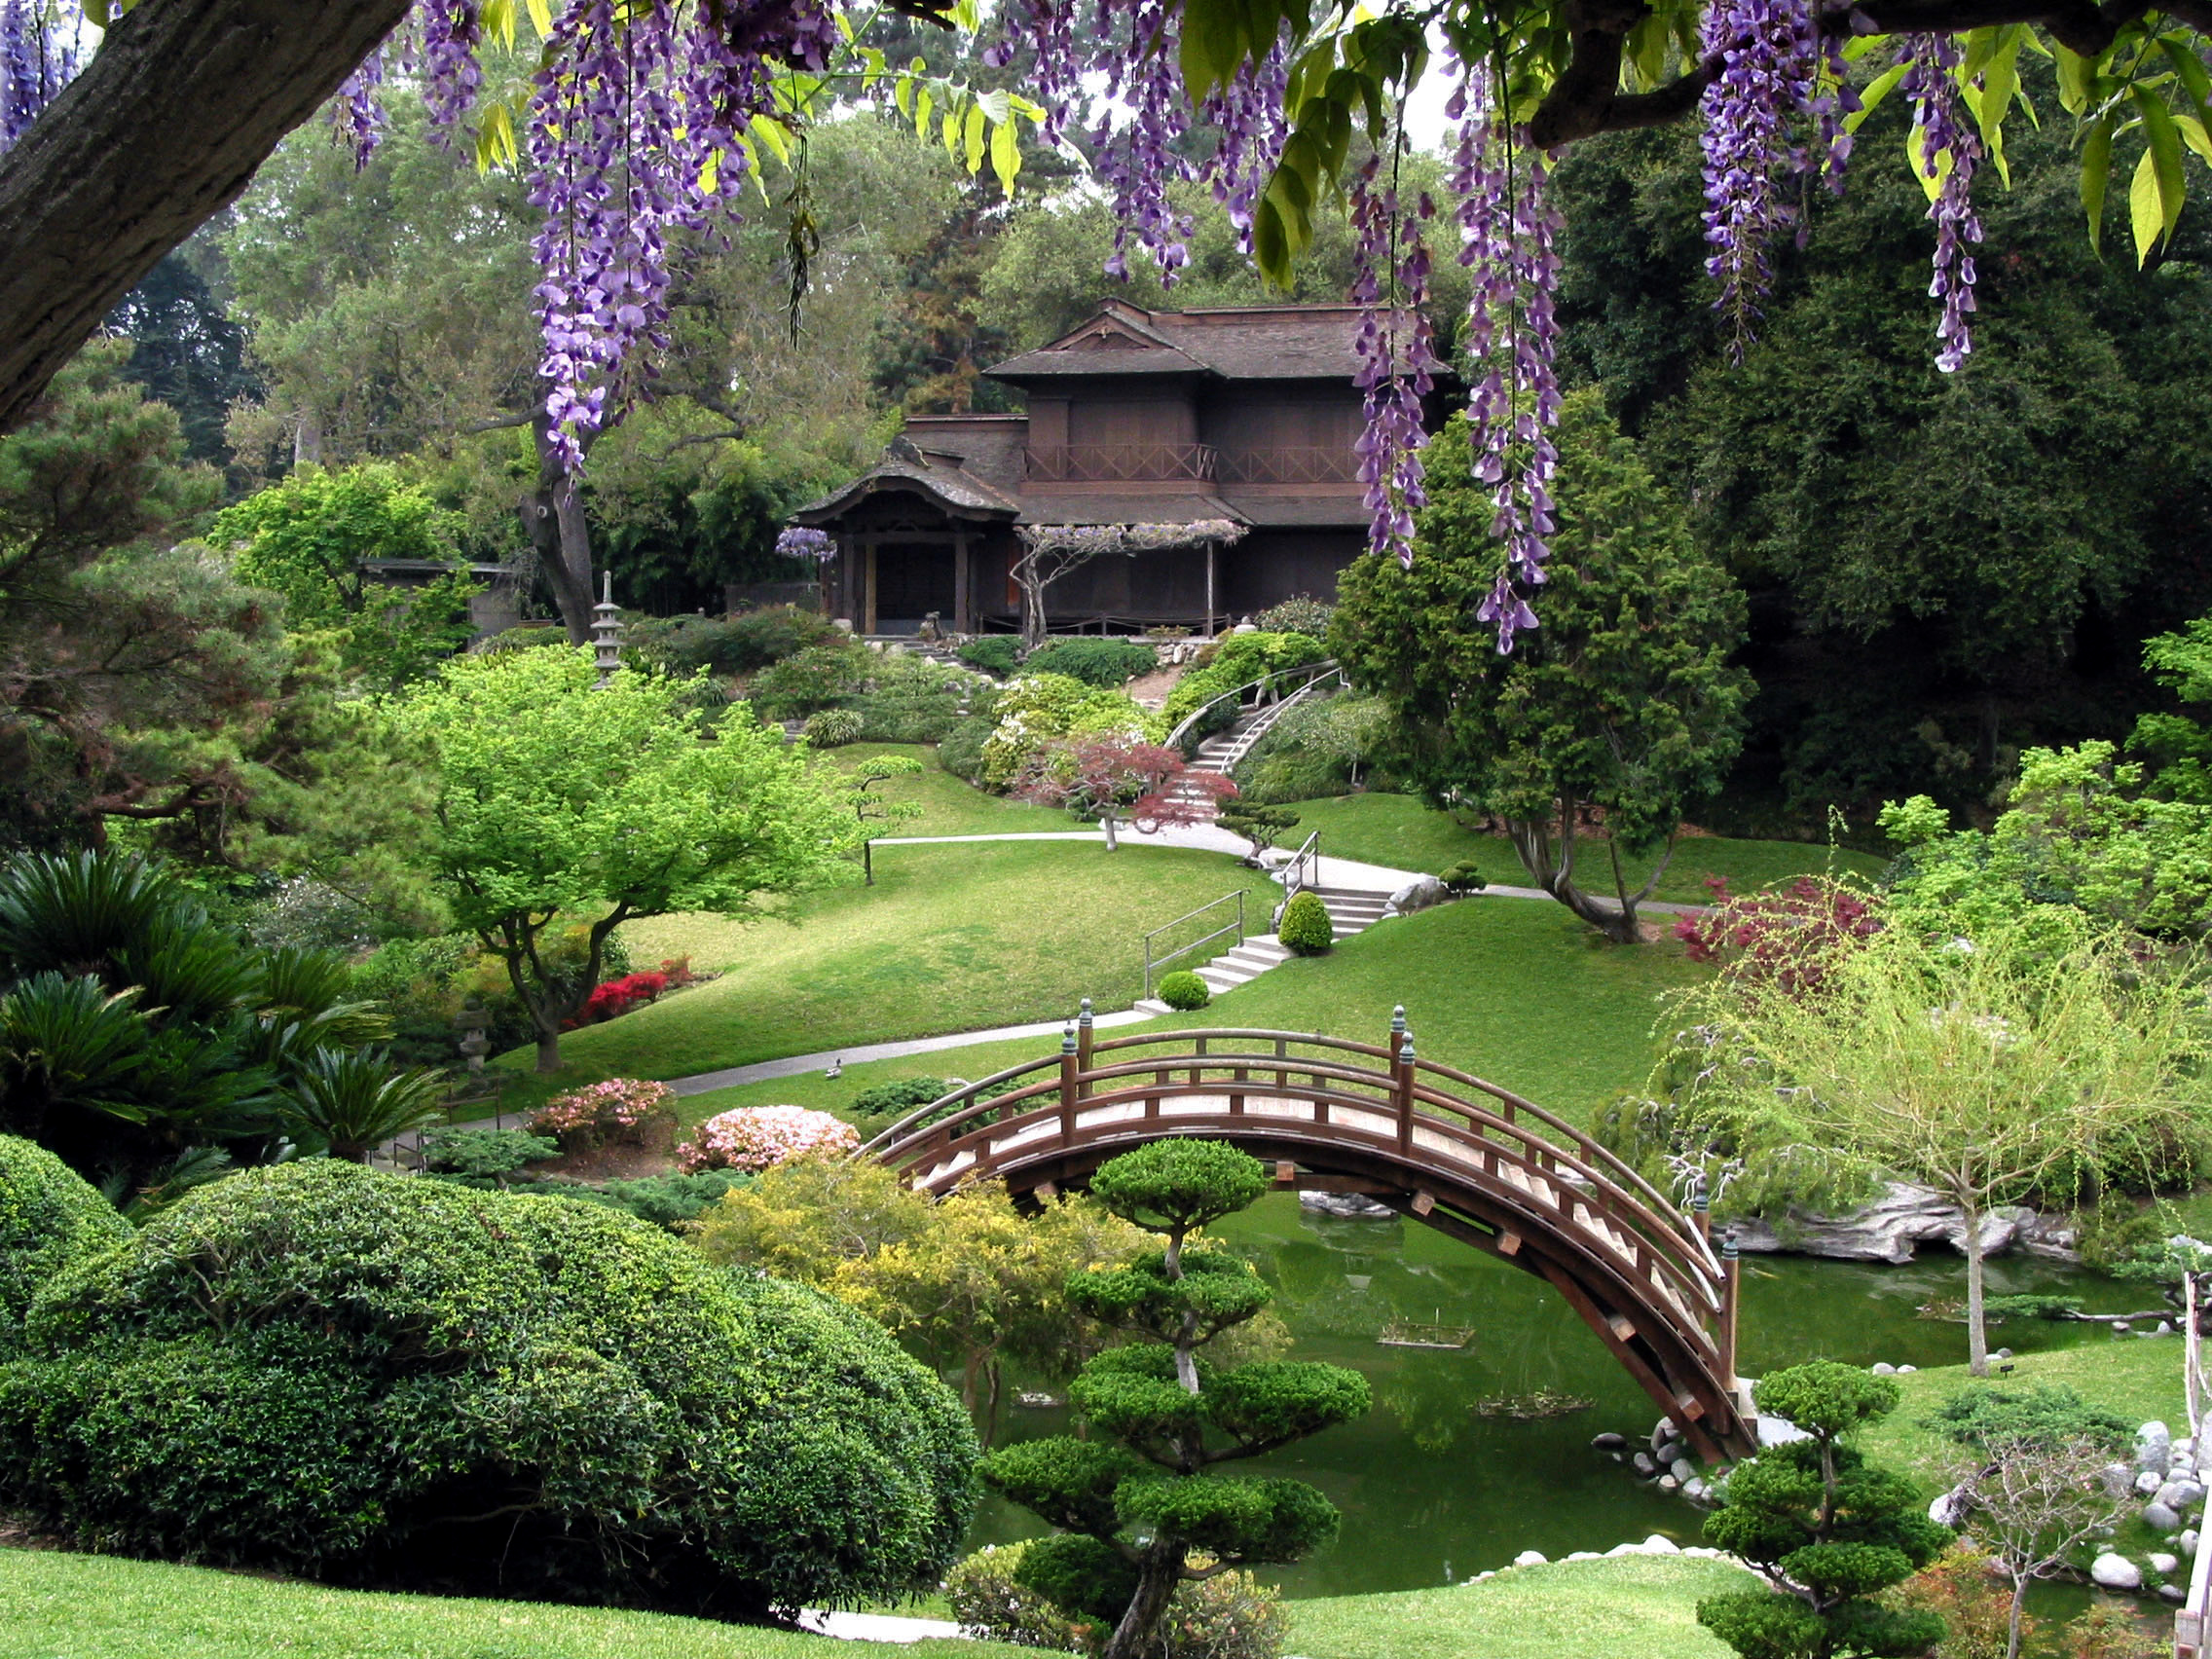 Japanese garden the huntington alice 39 s garden travel buzz - Japanese garden ...